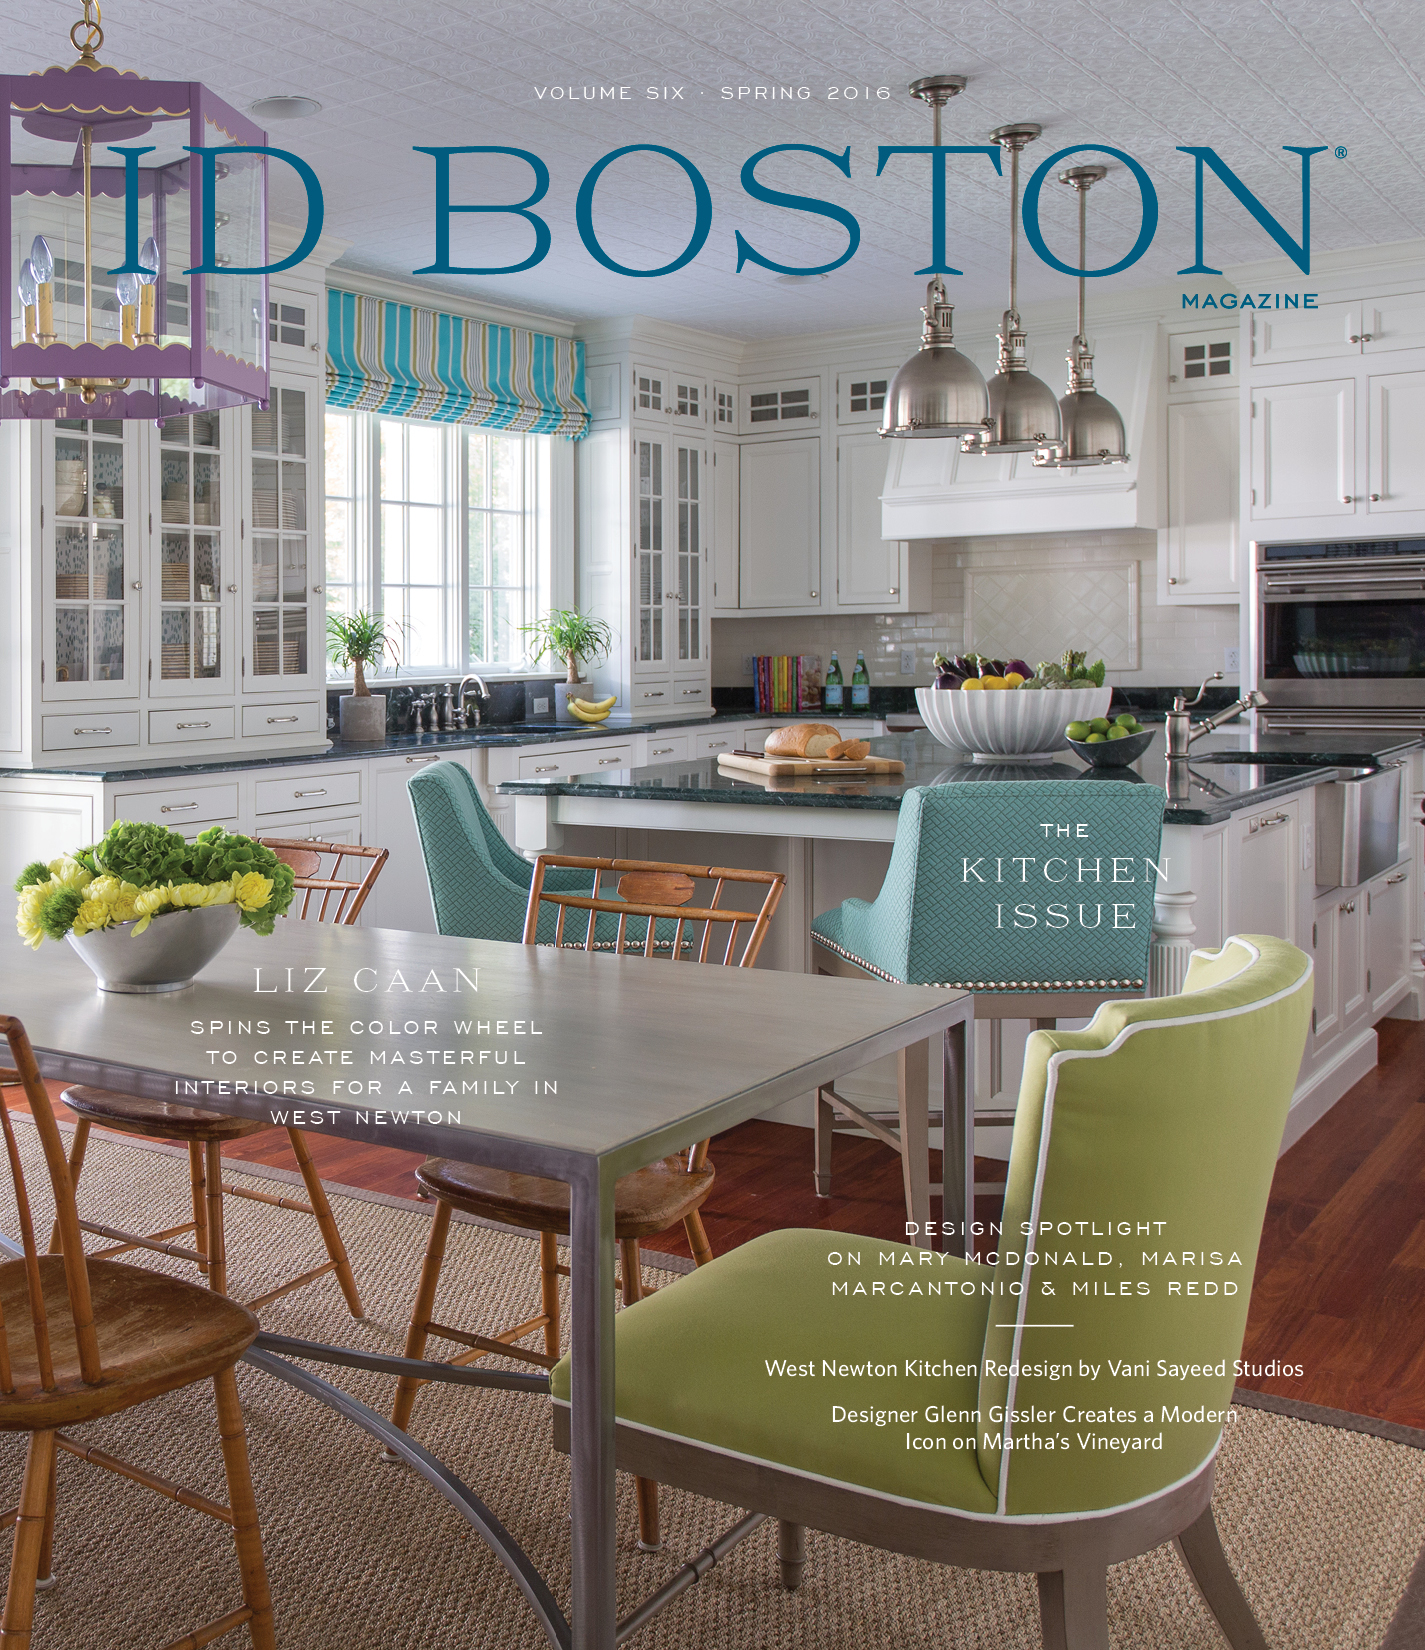 sharing the latest greatest decor trends with id boston magazine